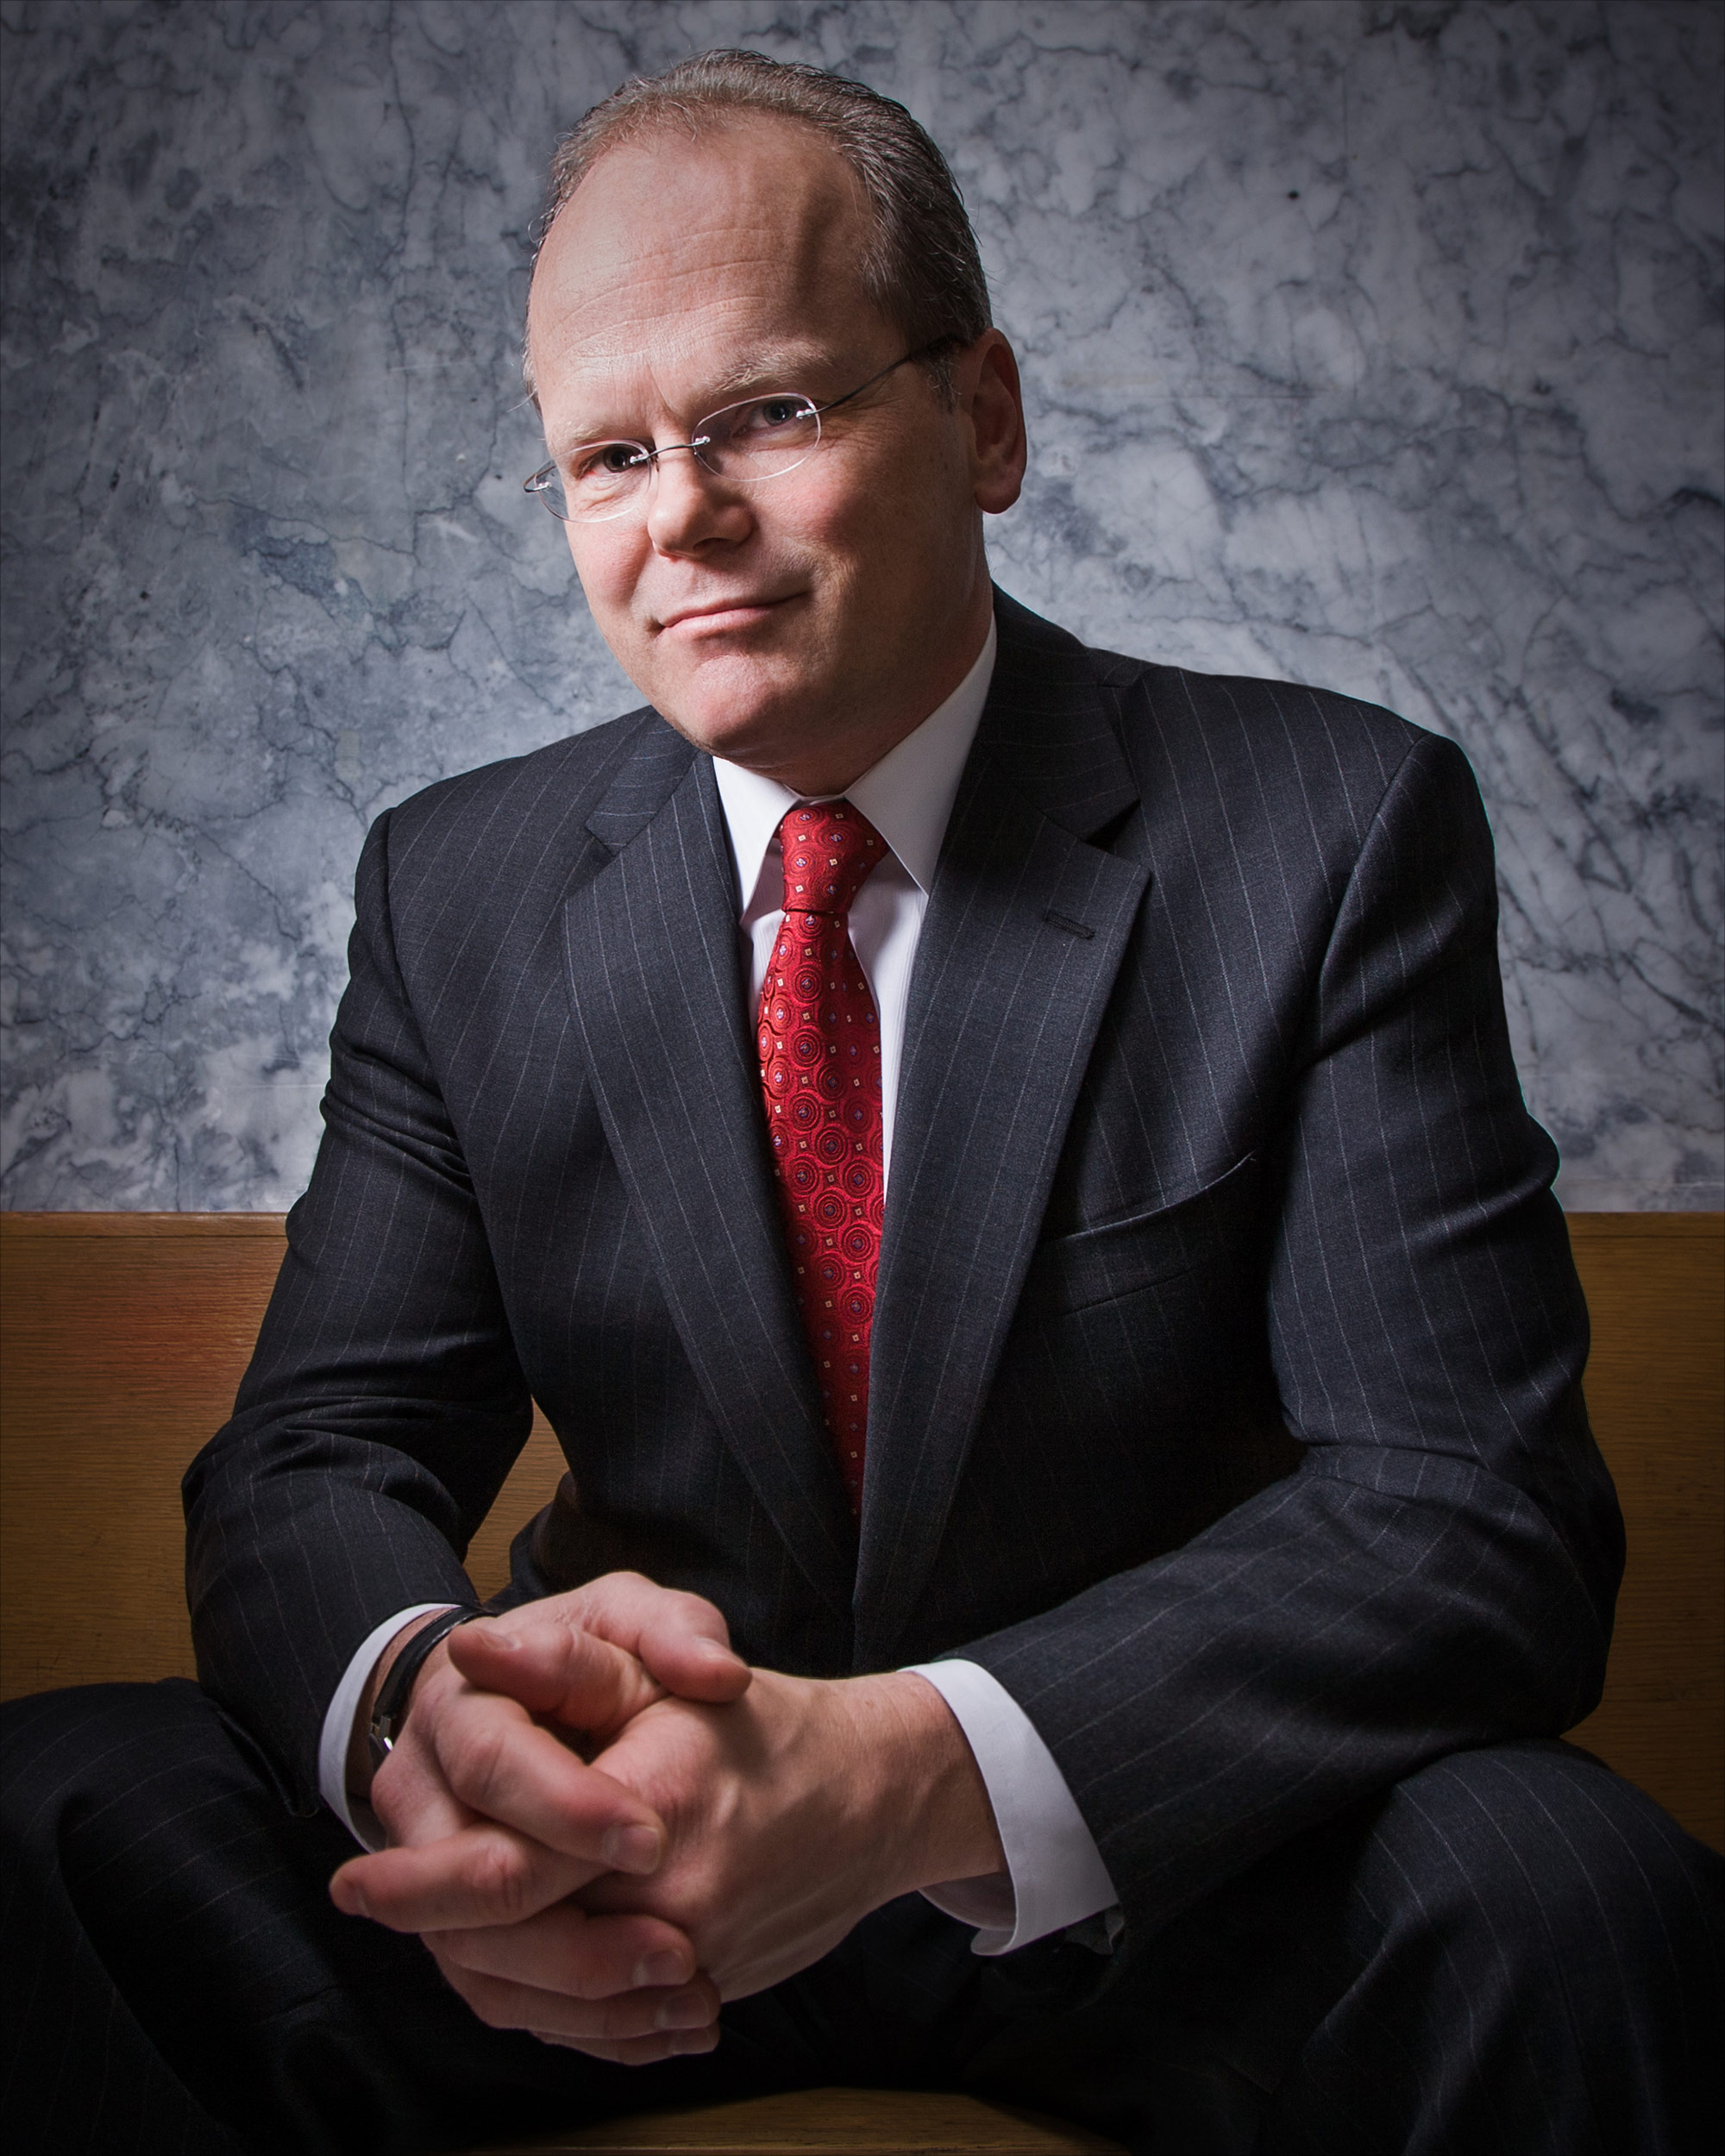 Dan Satterberg, King County Prosecuting Attorney